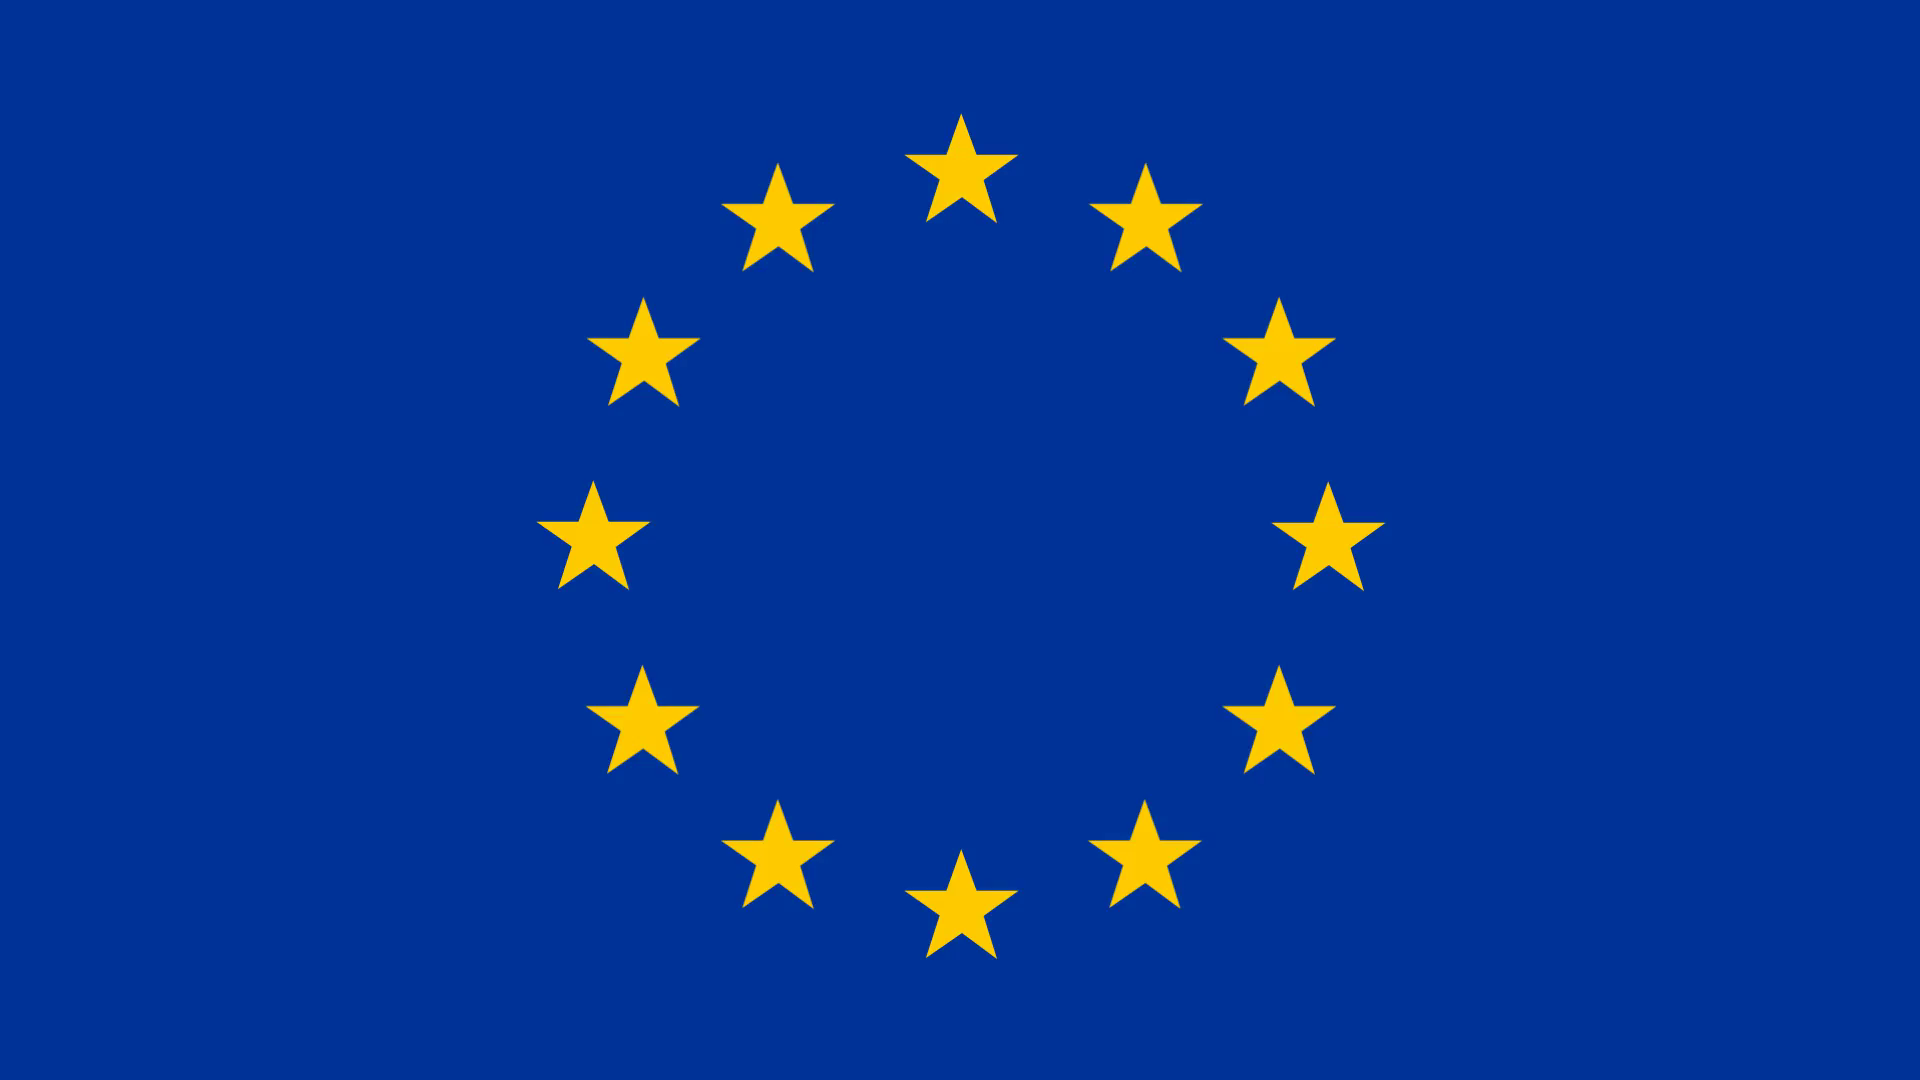 Buy European Union Flags | Europe Flags For Sale | High ...